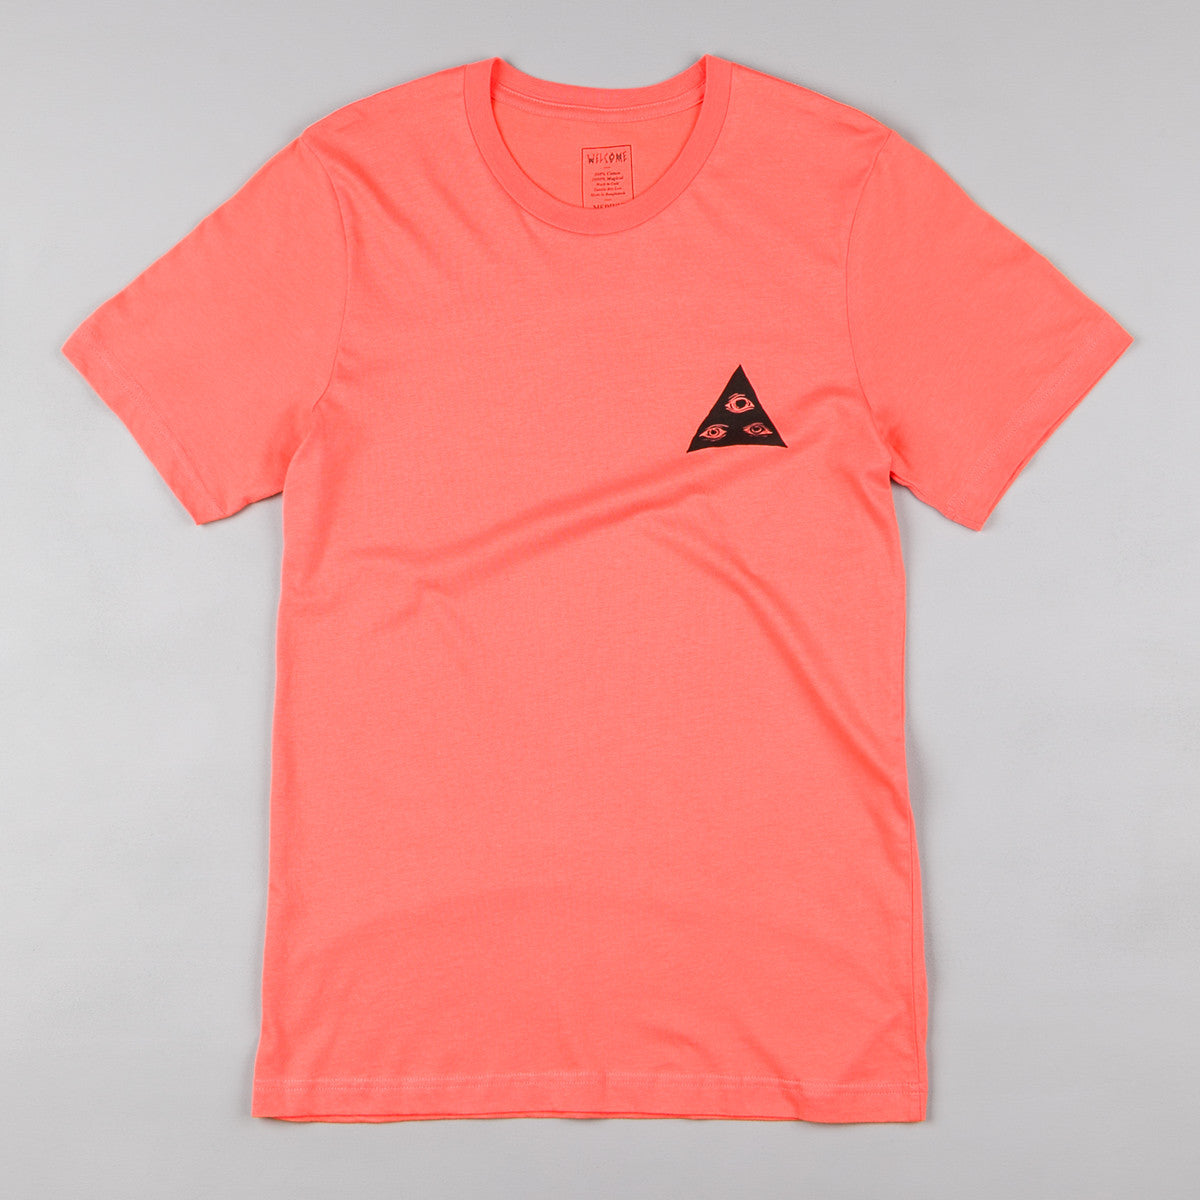 Welcome Skateboards Talisman T-Shirt - Coral / Black